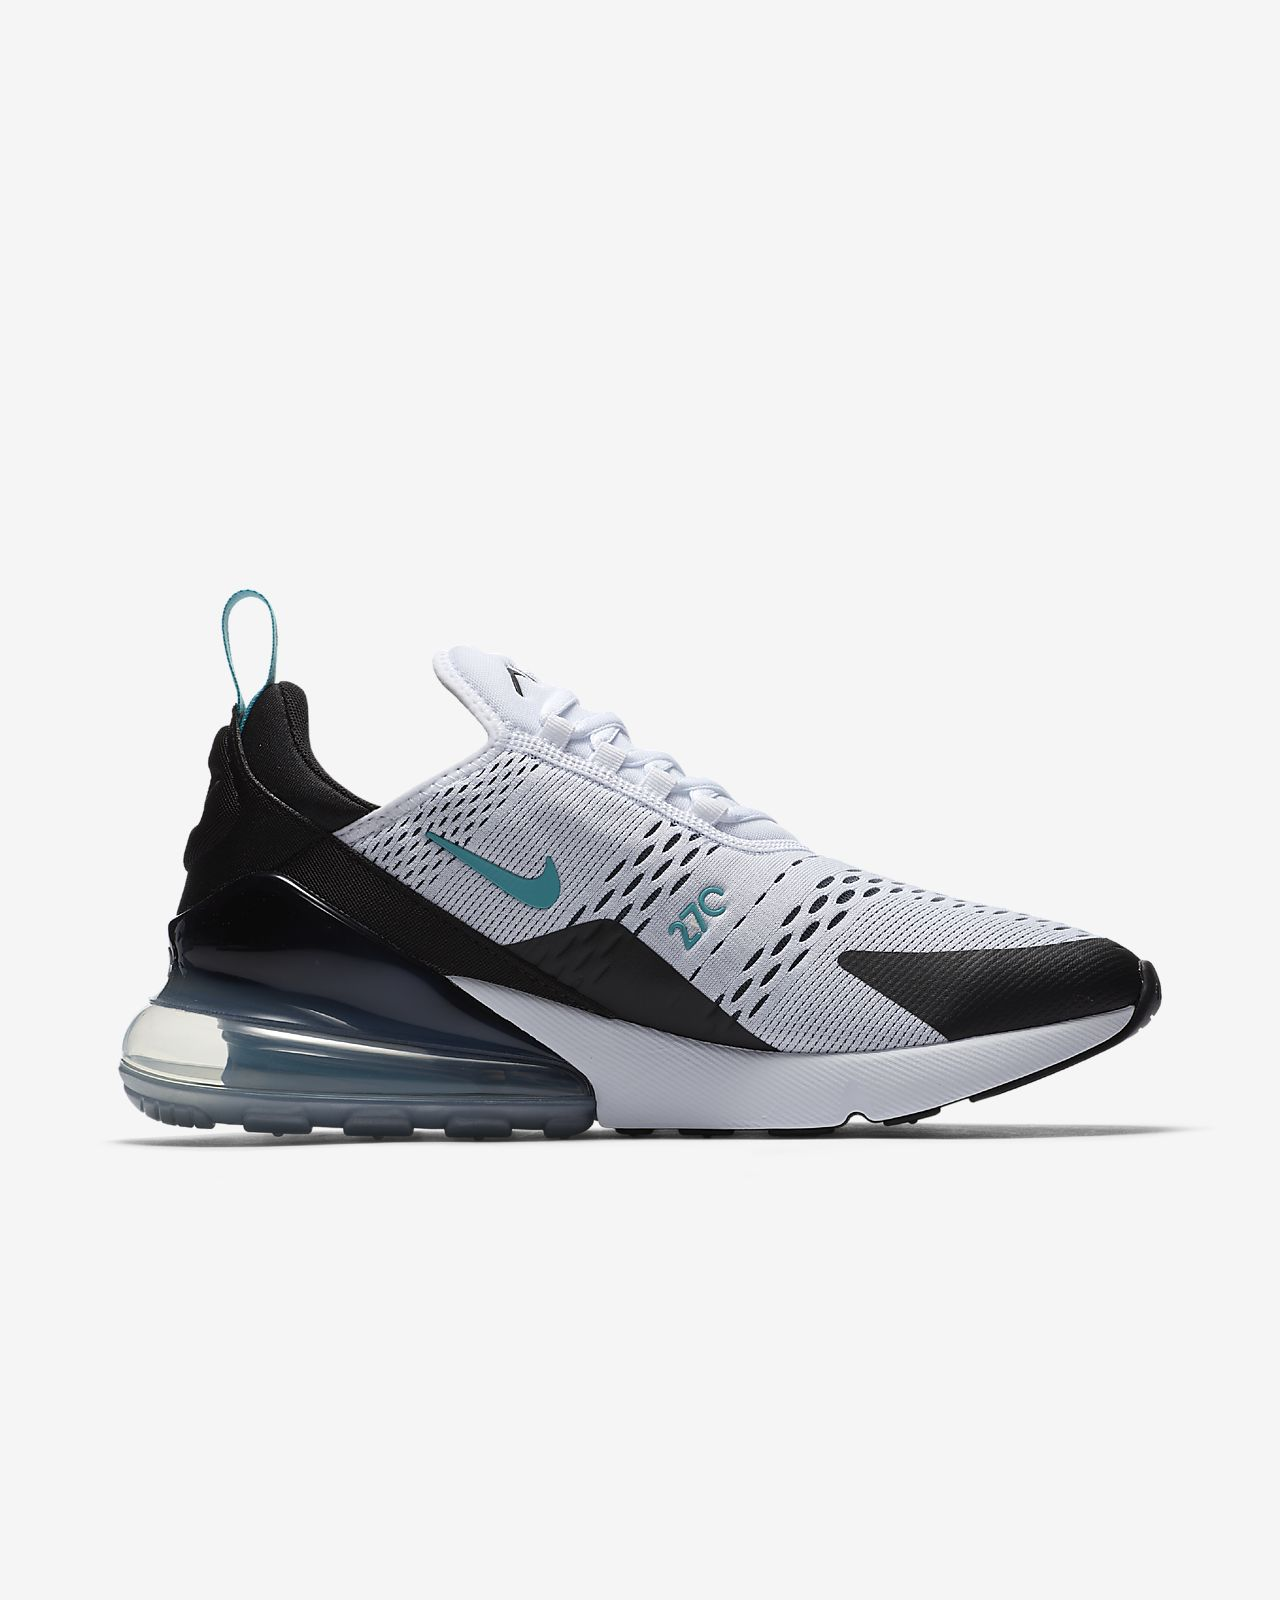 Comfortable Nike Air Force 270 Black White Men's Casual